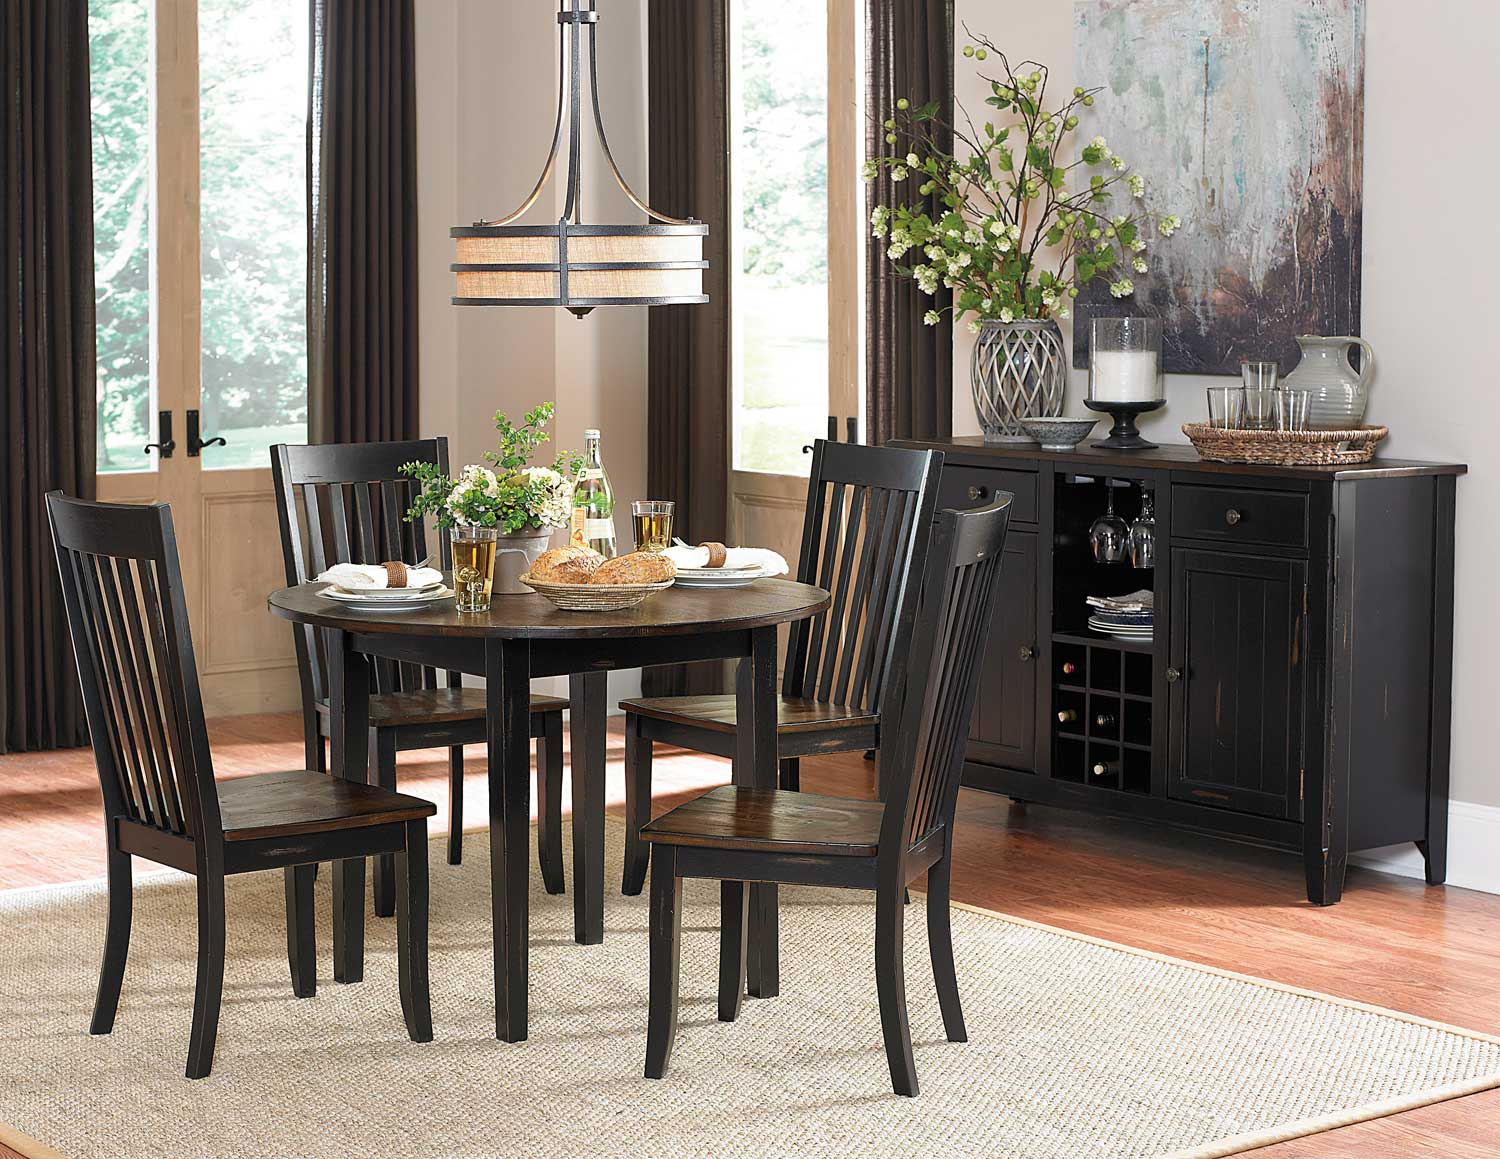 Homelegance Three Falls Round Dining Set - Two Tone Dark Brown/Black Sand